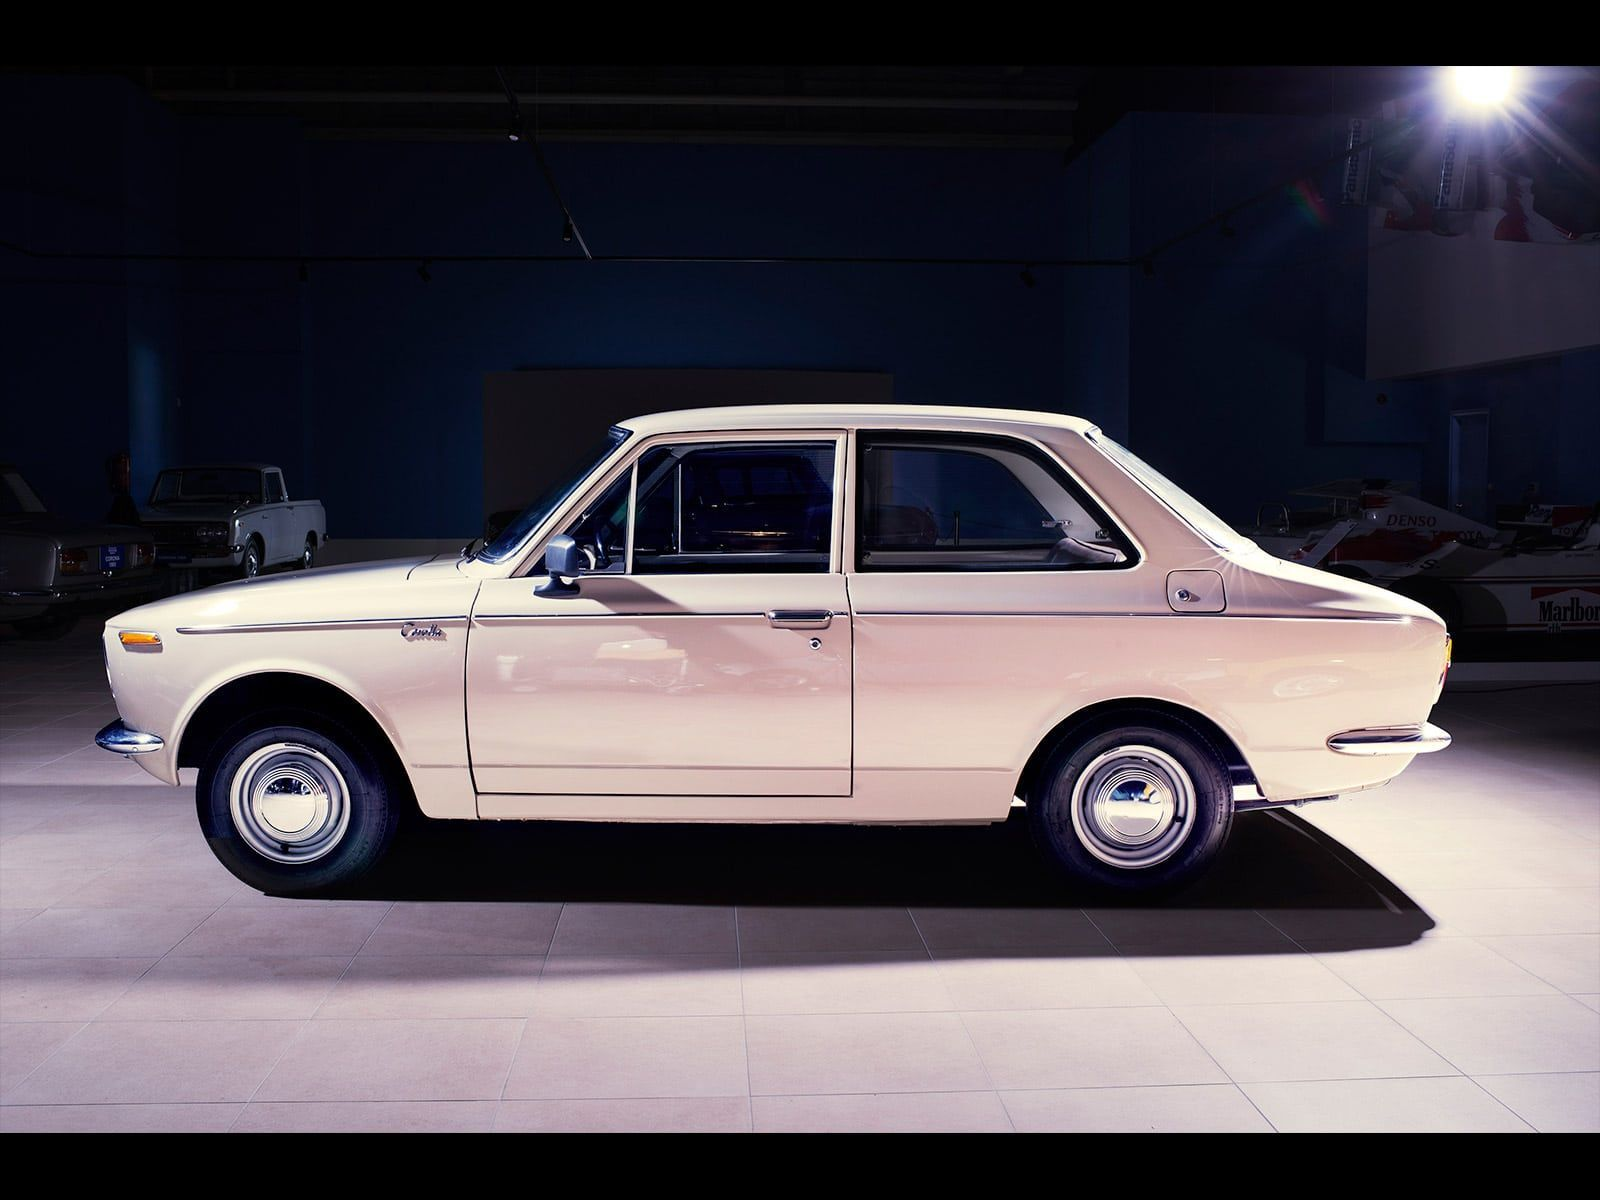 Car for the People - Carolla Celebrates 50 Years